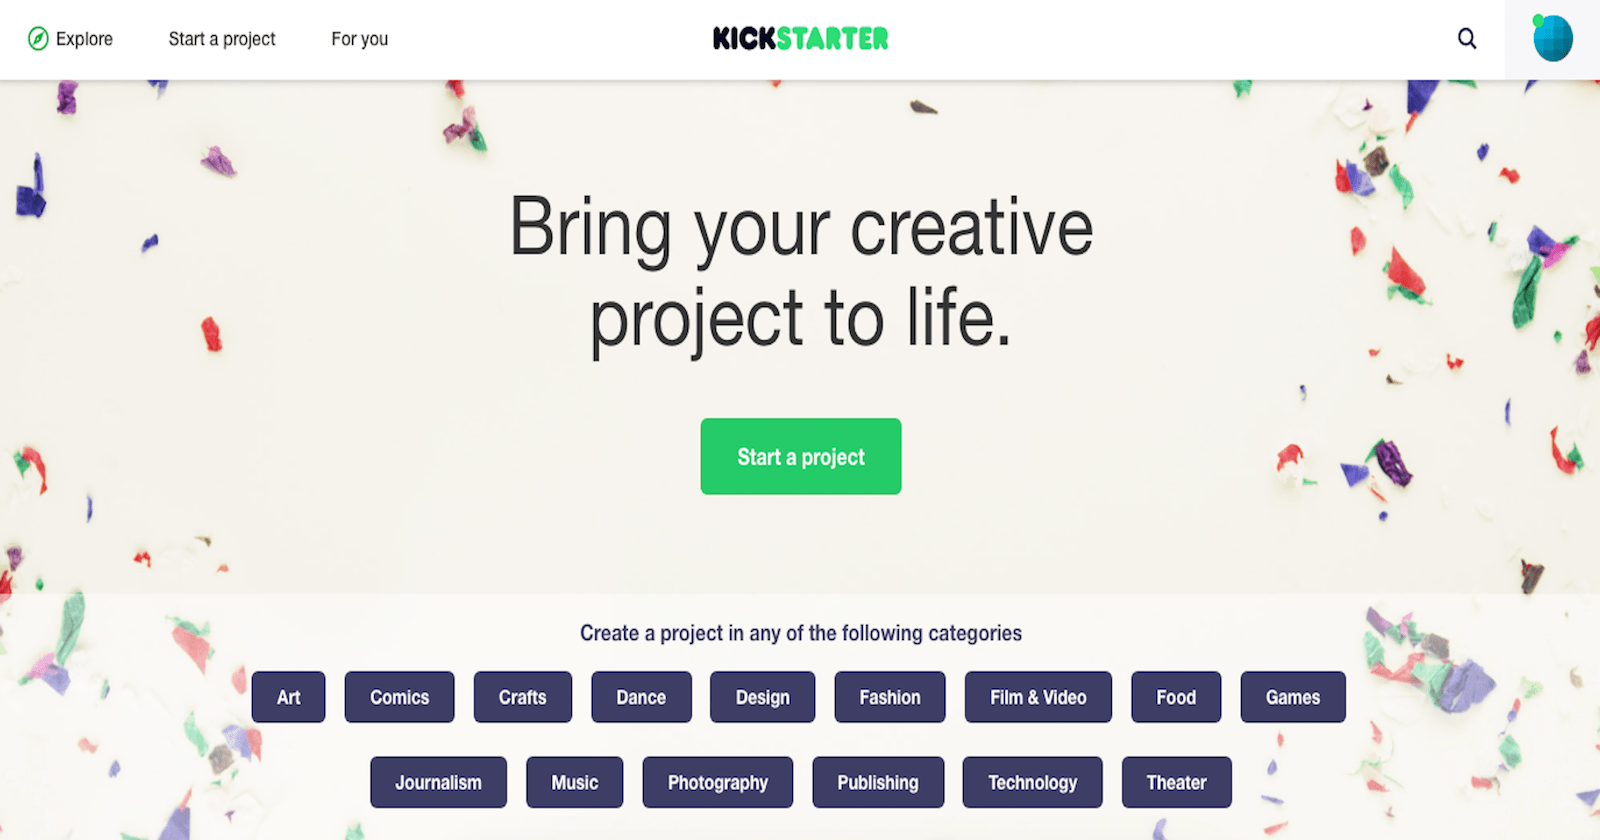 18 Advanced Kickstarter SEO Tips & Tricks You Need to Know by @5le